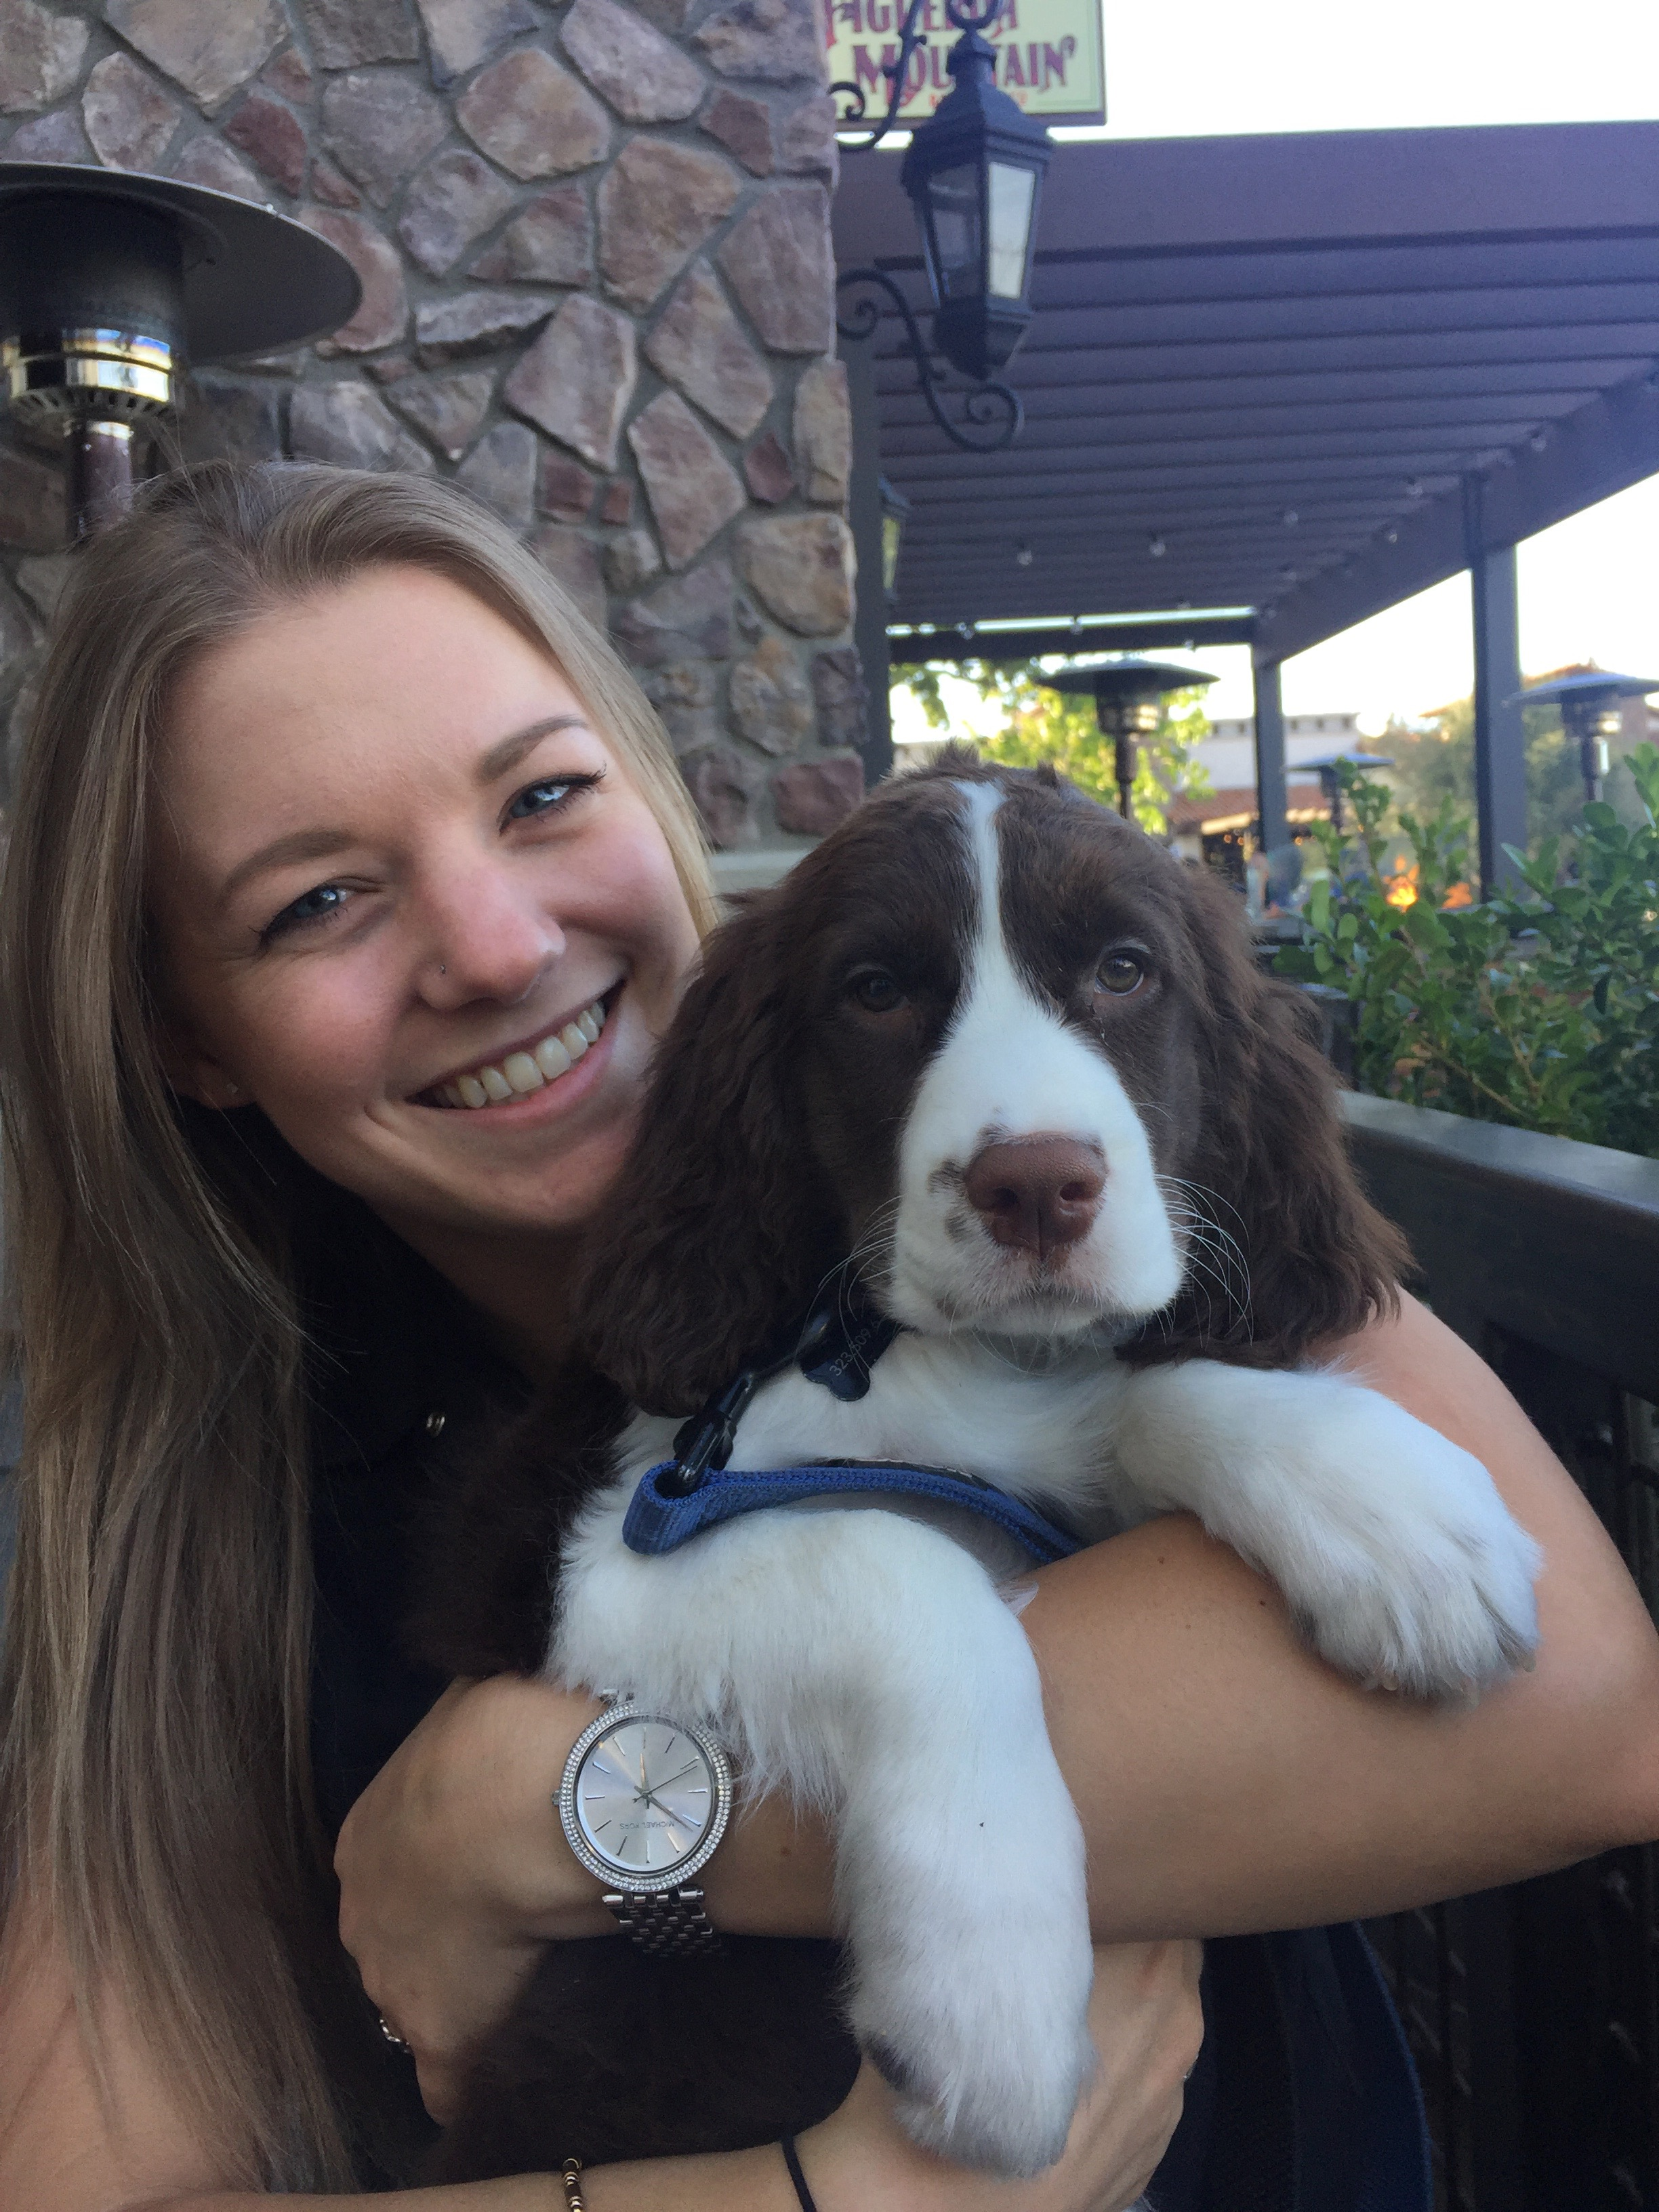 A 10 week old Darby and FigFam at the Westlake Village Taproom